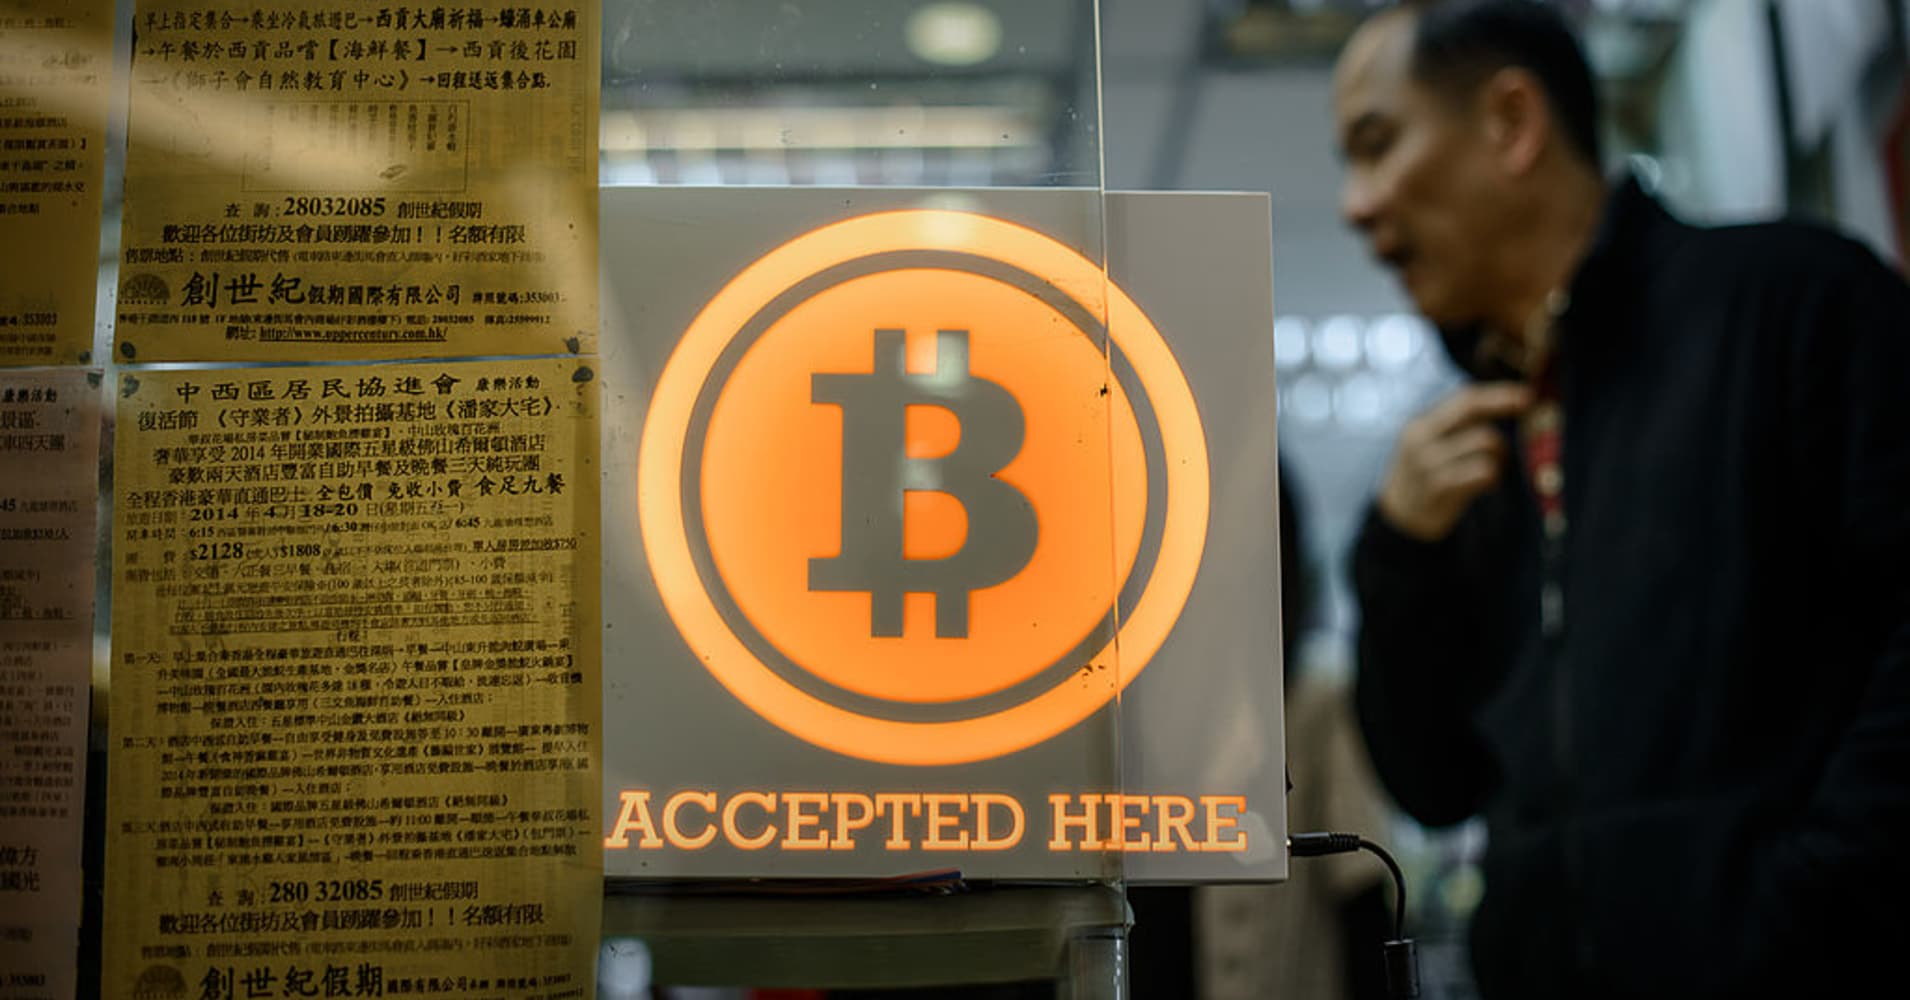 Cryptocurrencies need regulation, says CEO of Chinese bitcoin exchange BTCC - CNBC